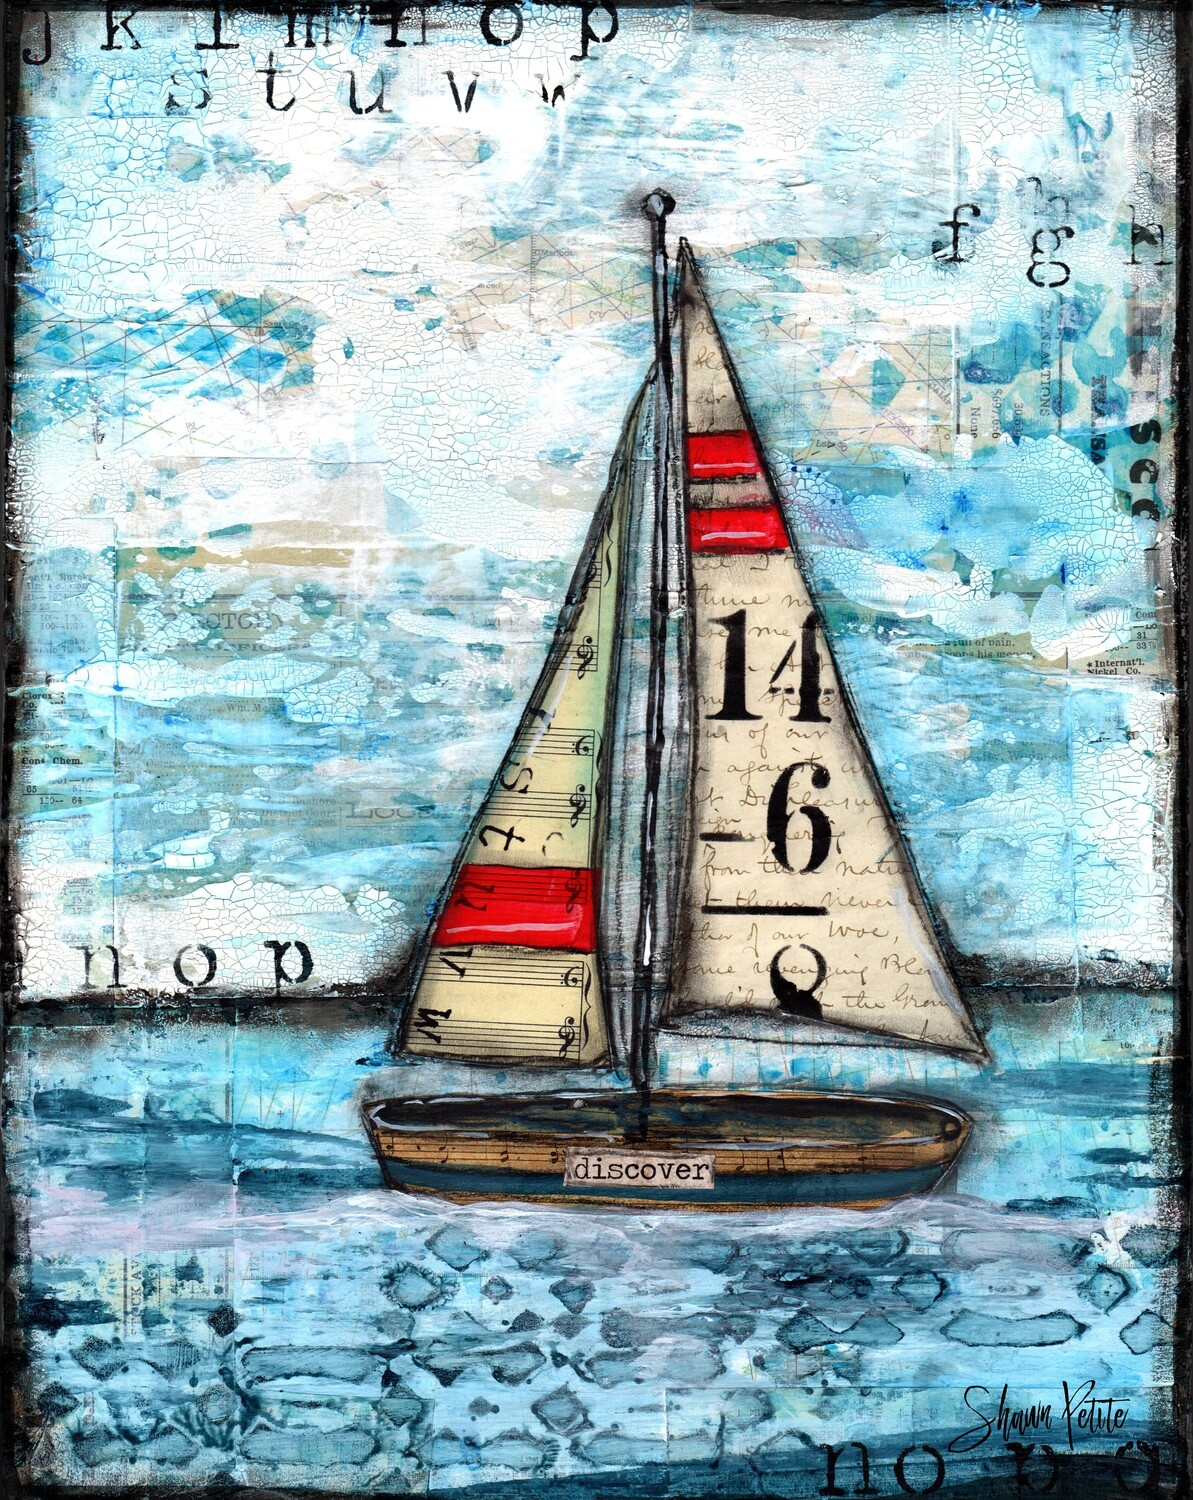 """""""Discover sail boat"""" Print on Wood 4x6 Overstock"""